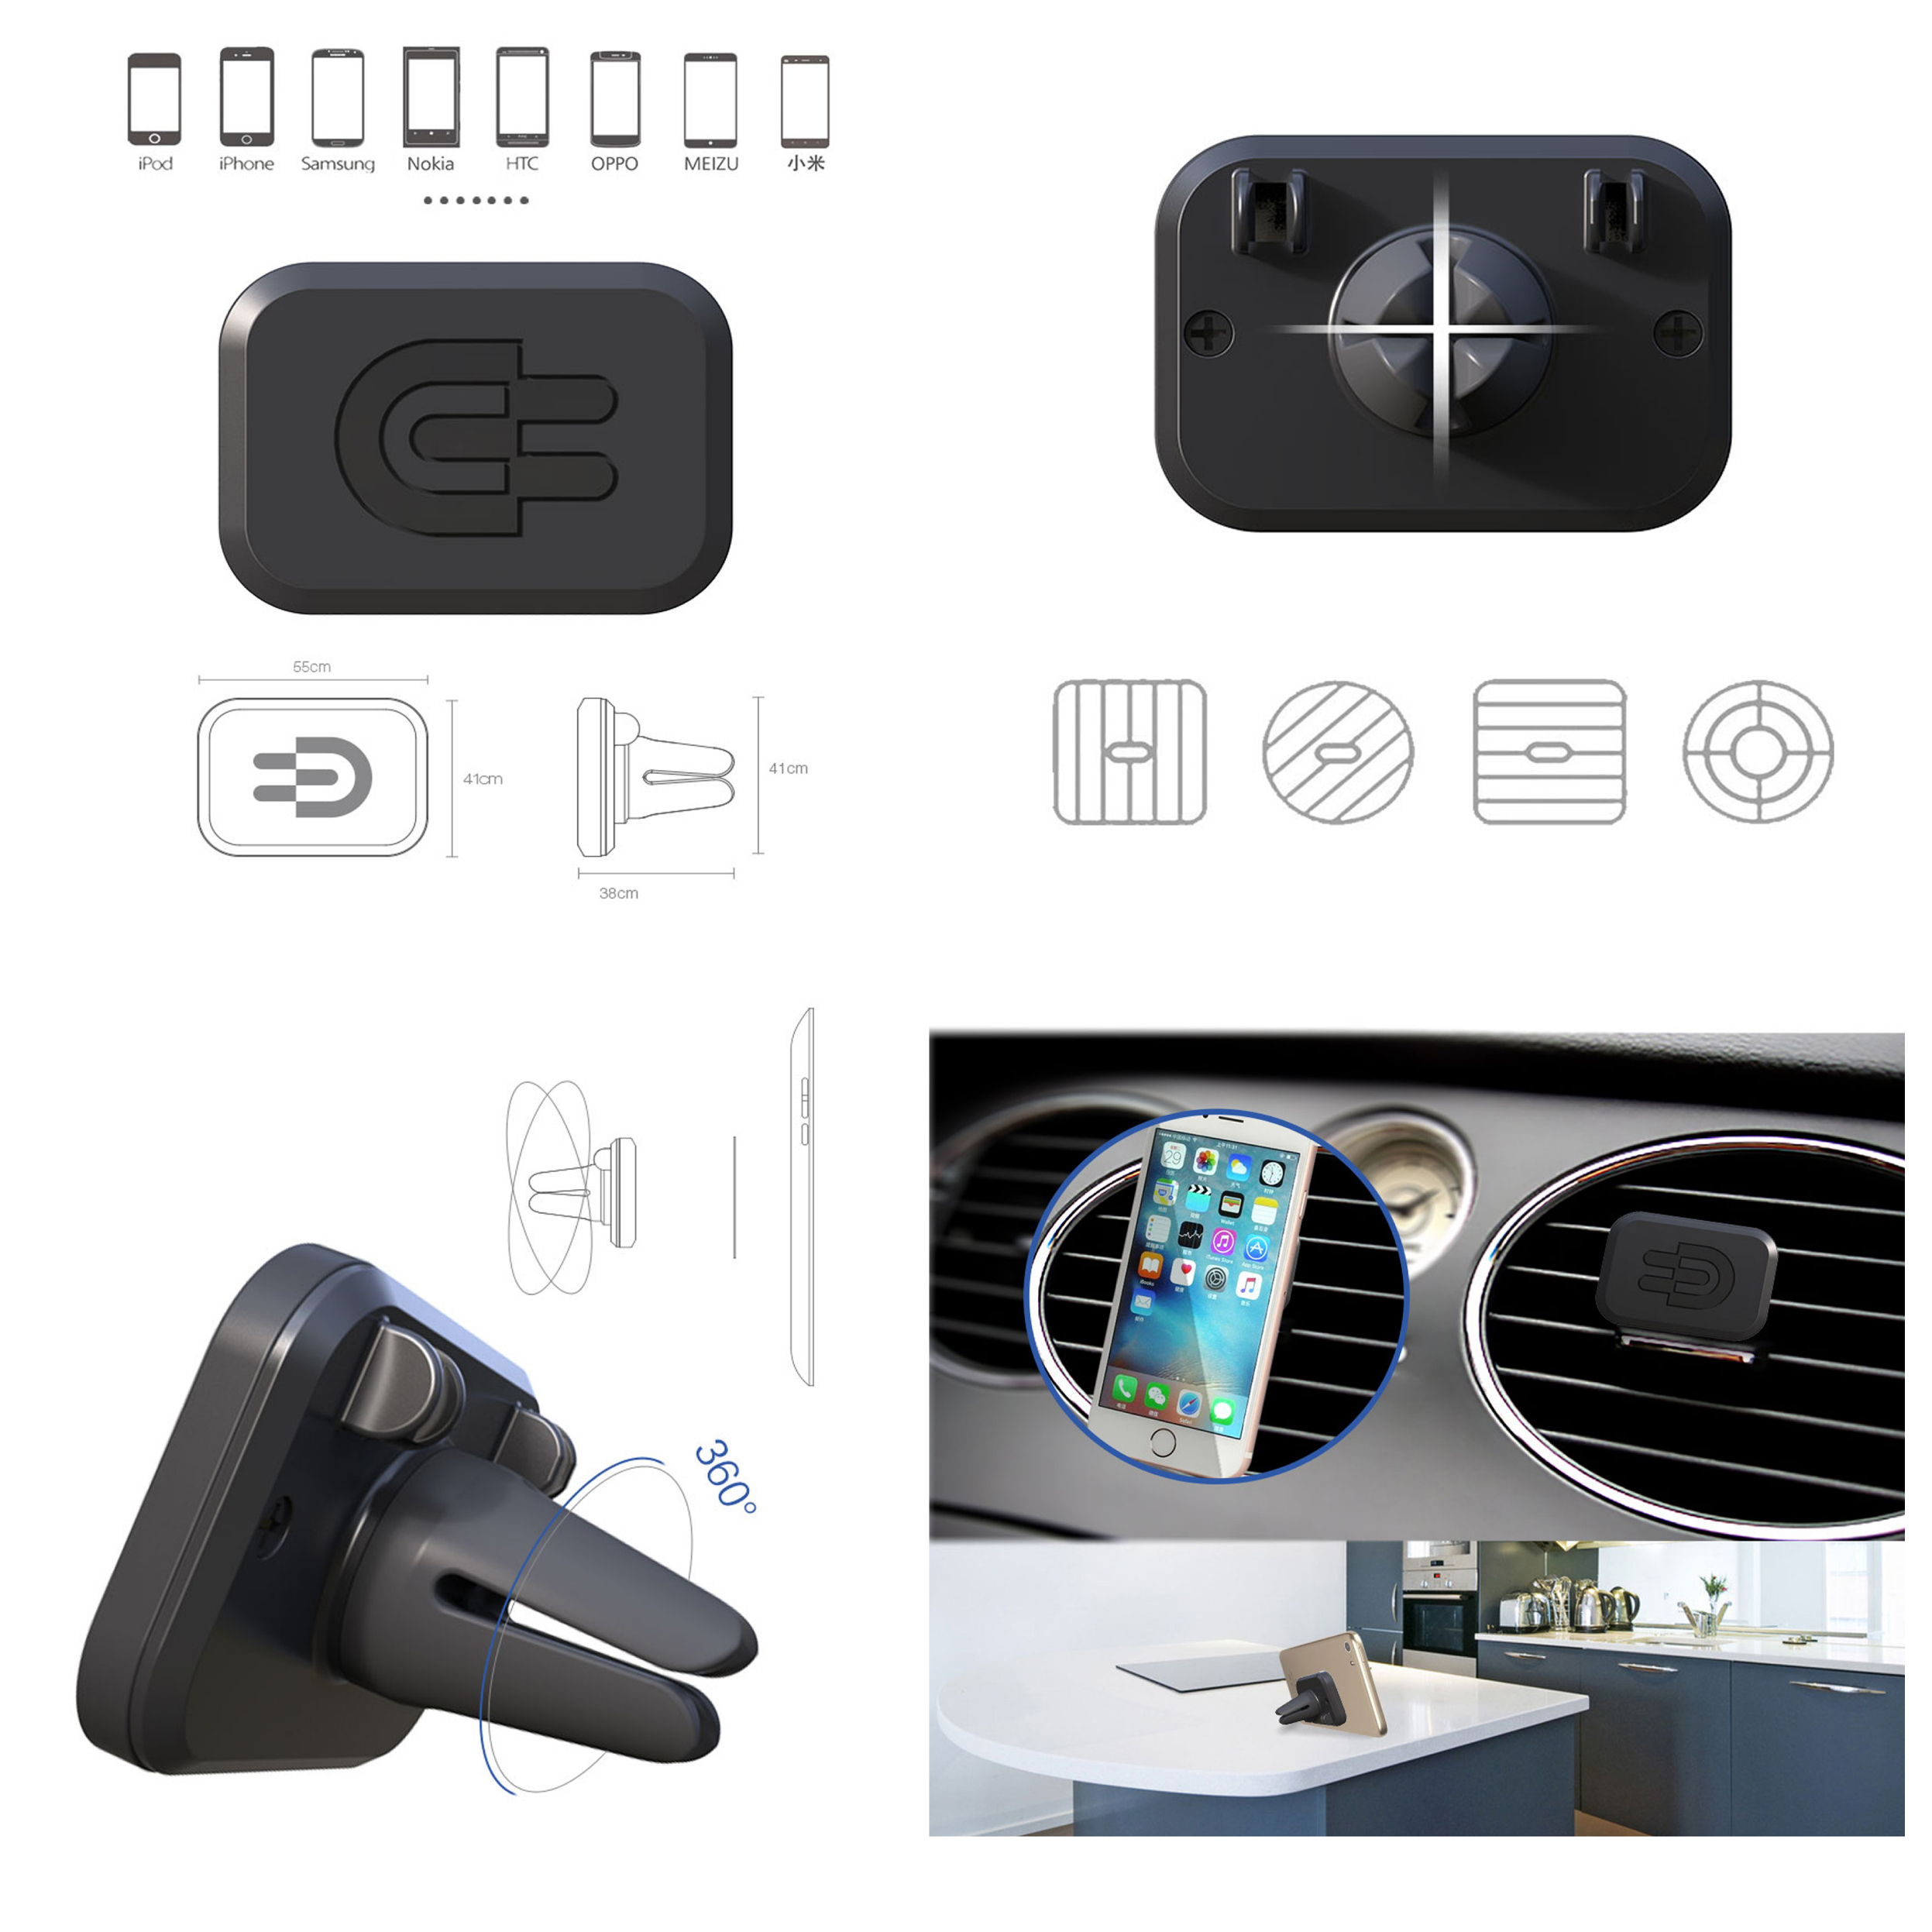 Aliexpress com buy eugizmo car magnetic phone holder with dual usb port charger cigarette lighter magnetic vent mount for universal smartphones from